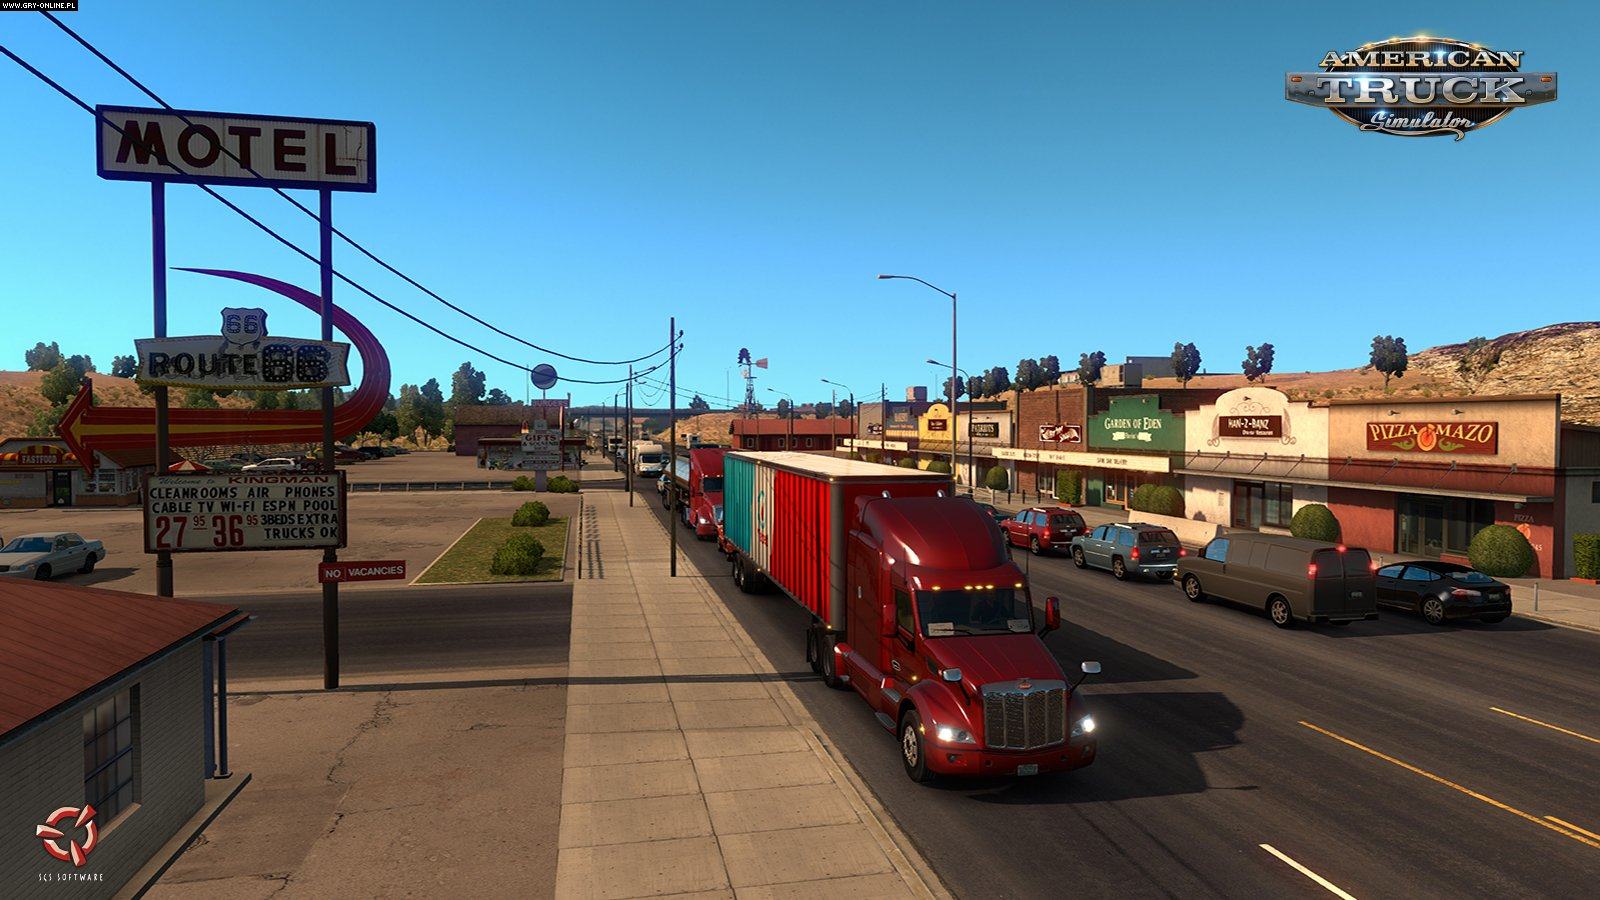 American Truck Simulator PC Games Image 5/68, SCS Software, IMGN.PRO